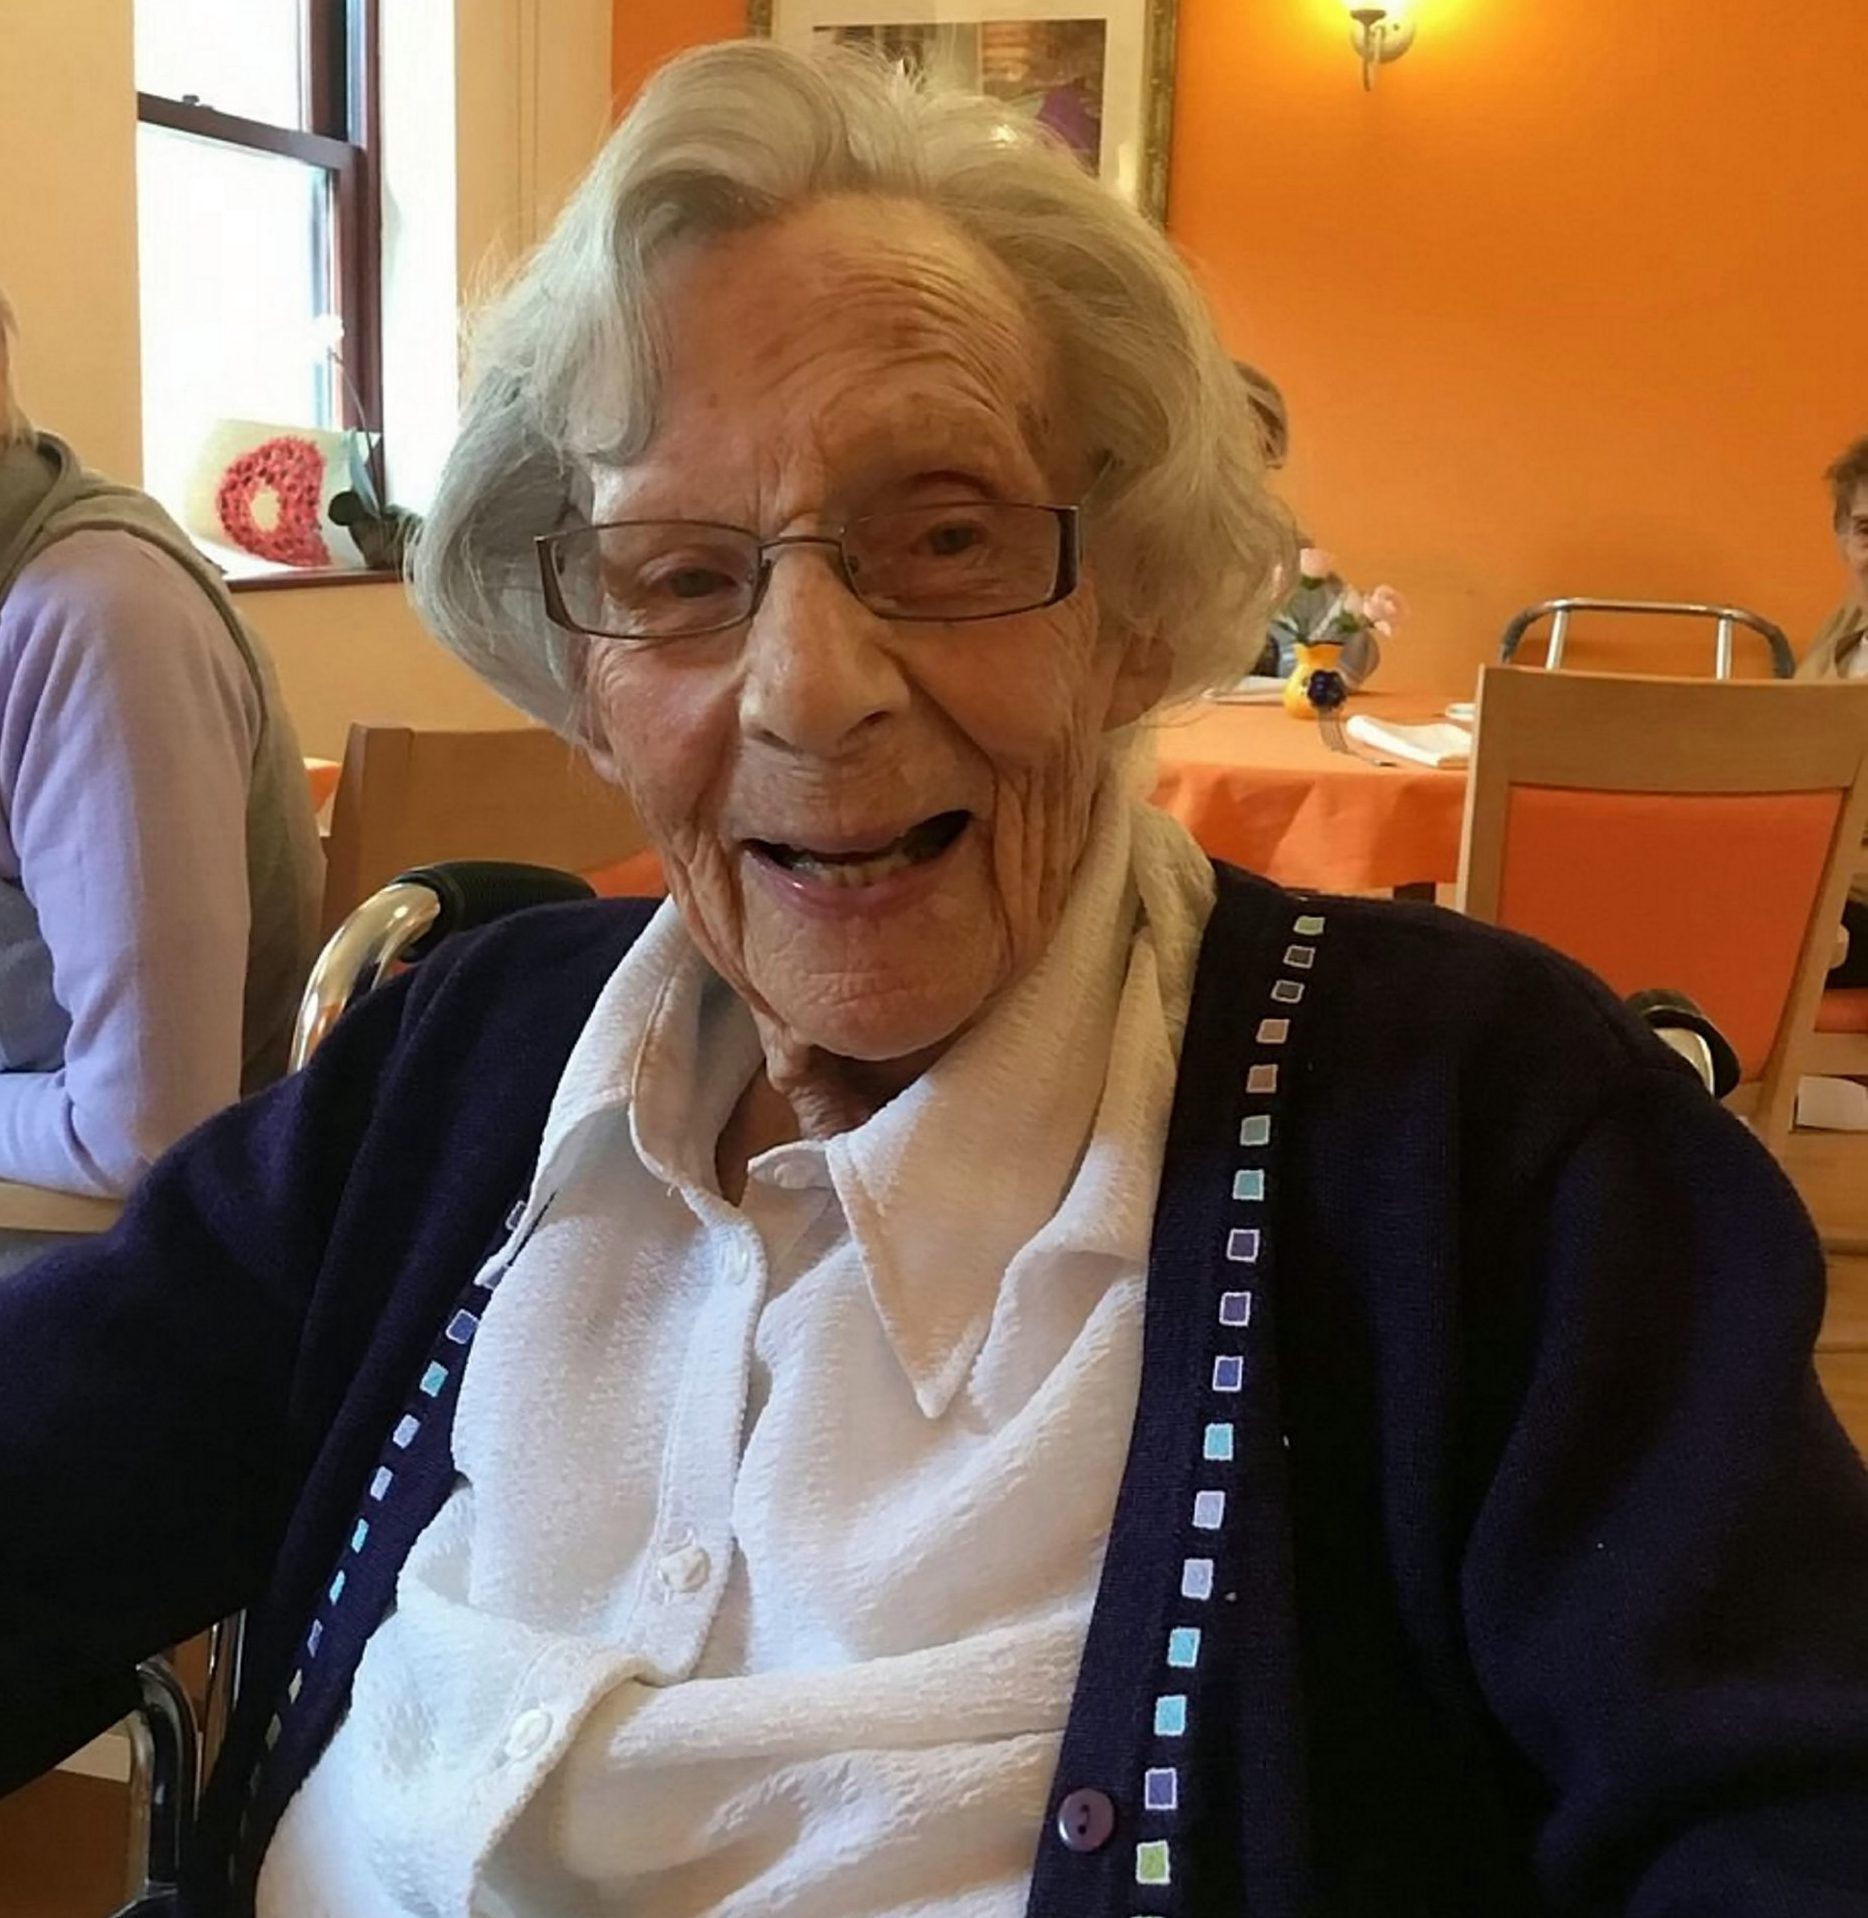 Anne Brokenbrow, the remarkable 104-year-old from Bristol. See SWNS story SWBRarrest - 104-year-old reveals her last wish is to be ARRESTED as she has never committed a crime - and police are set to oblige